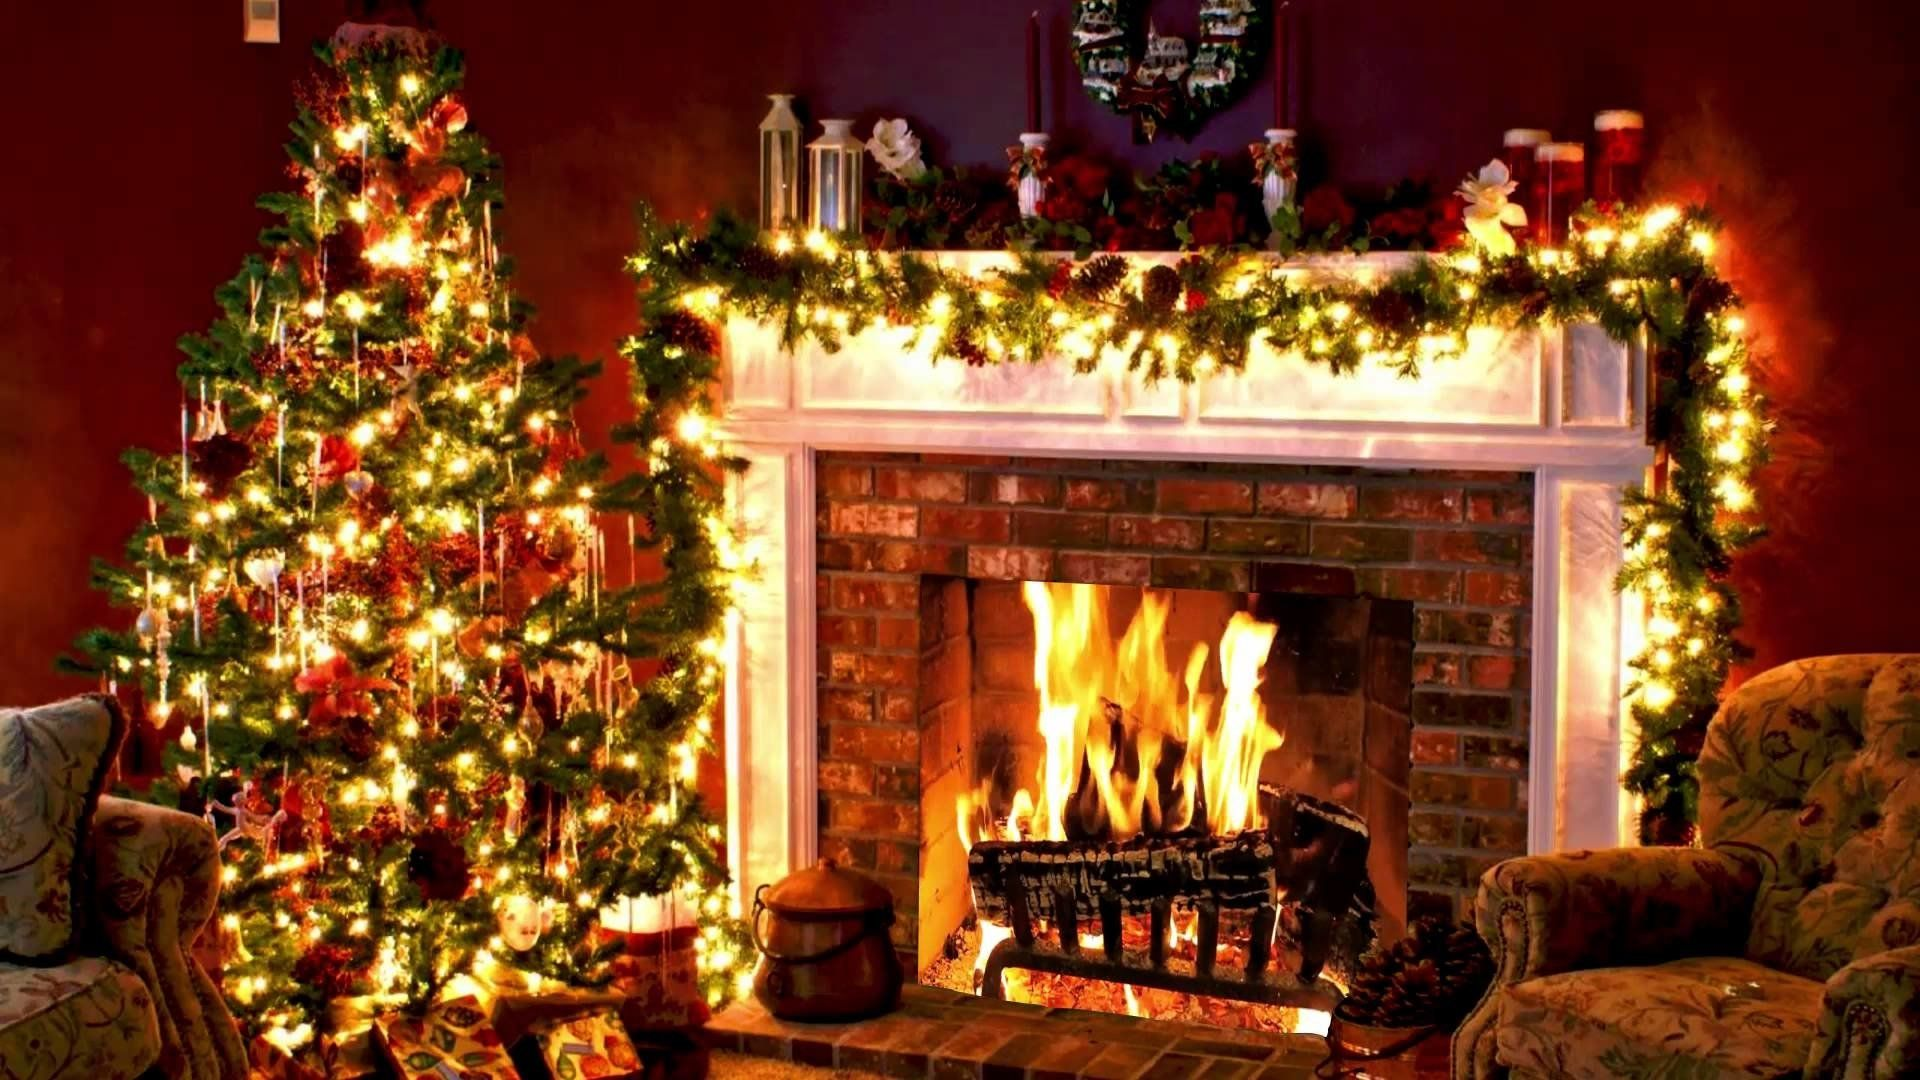 Holiday Christmas Holiday Christmas Tree Fireplace Wallpaper 1920x1080